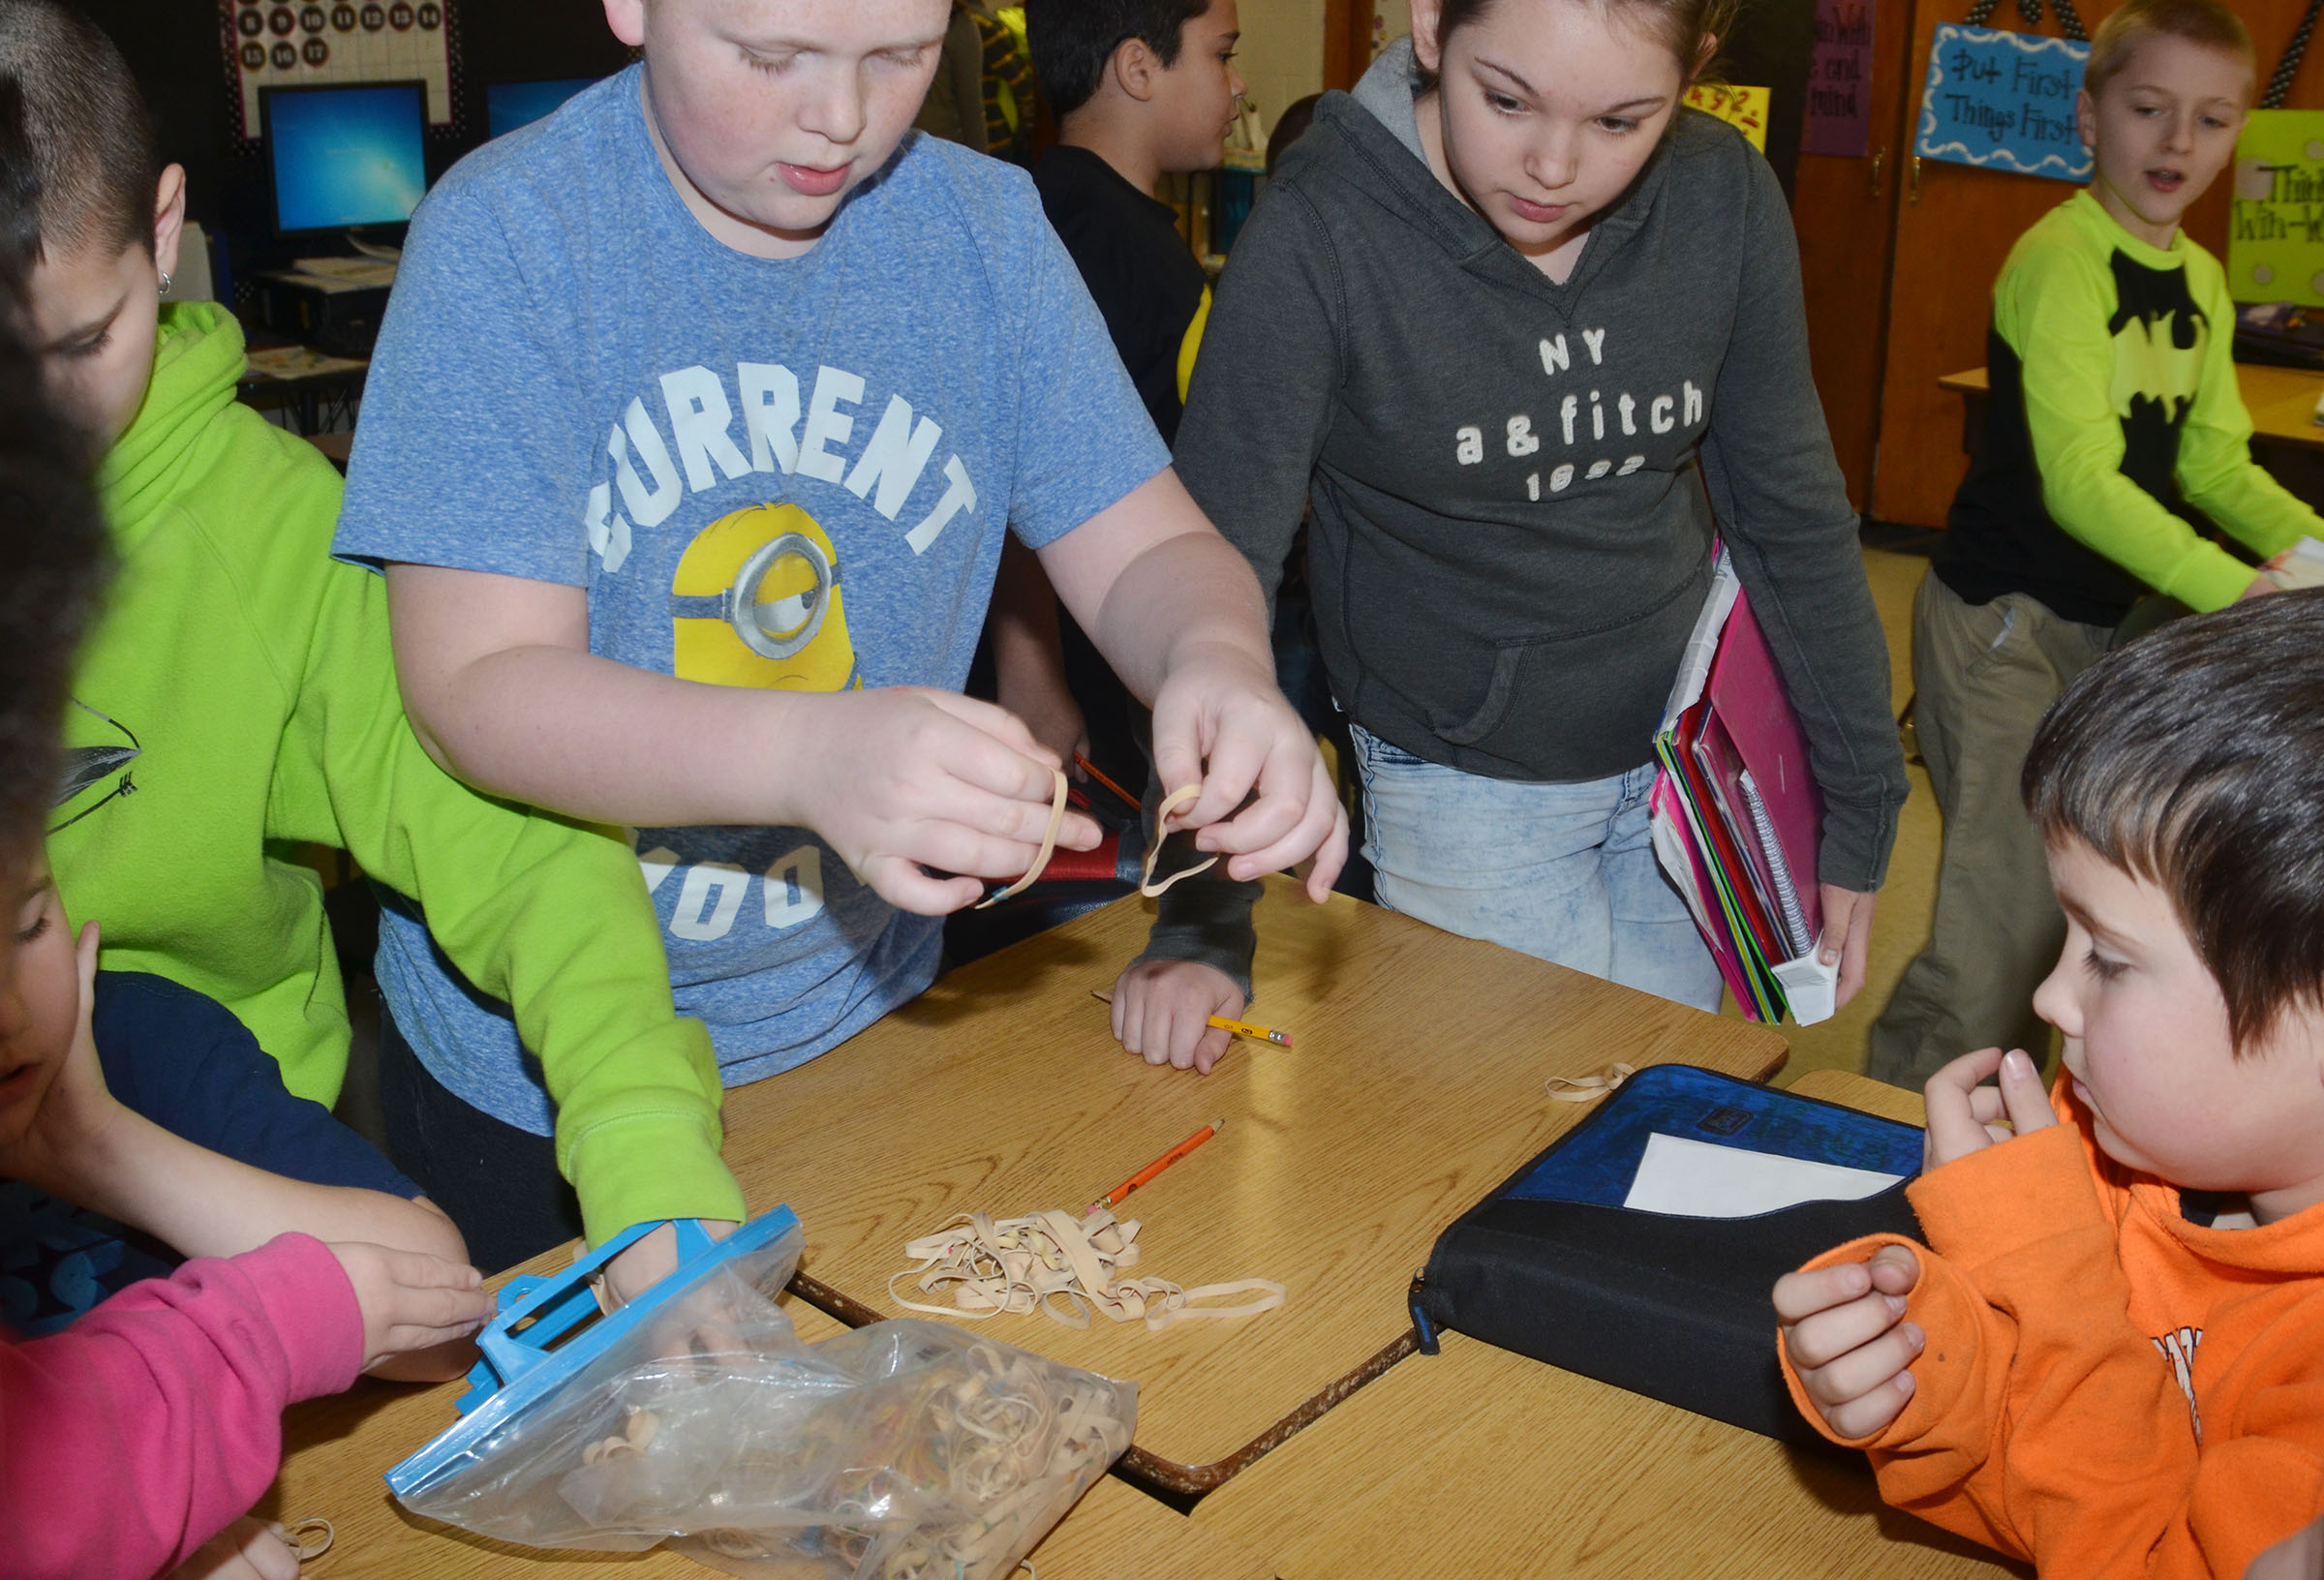 CMS fourth-grader Simon Wilkerson and his classmates count 100 rubber bands.